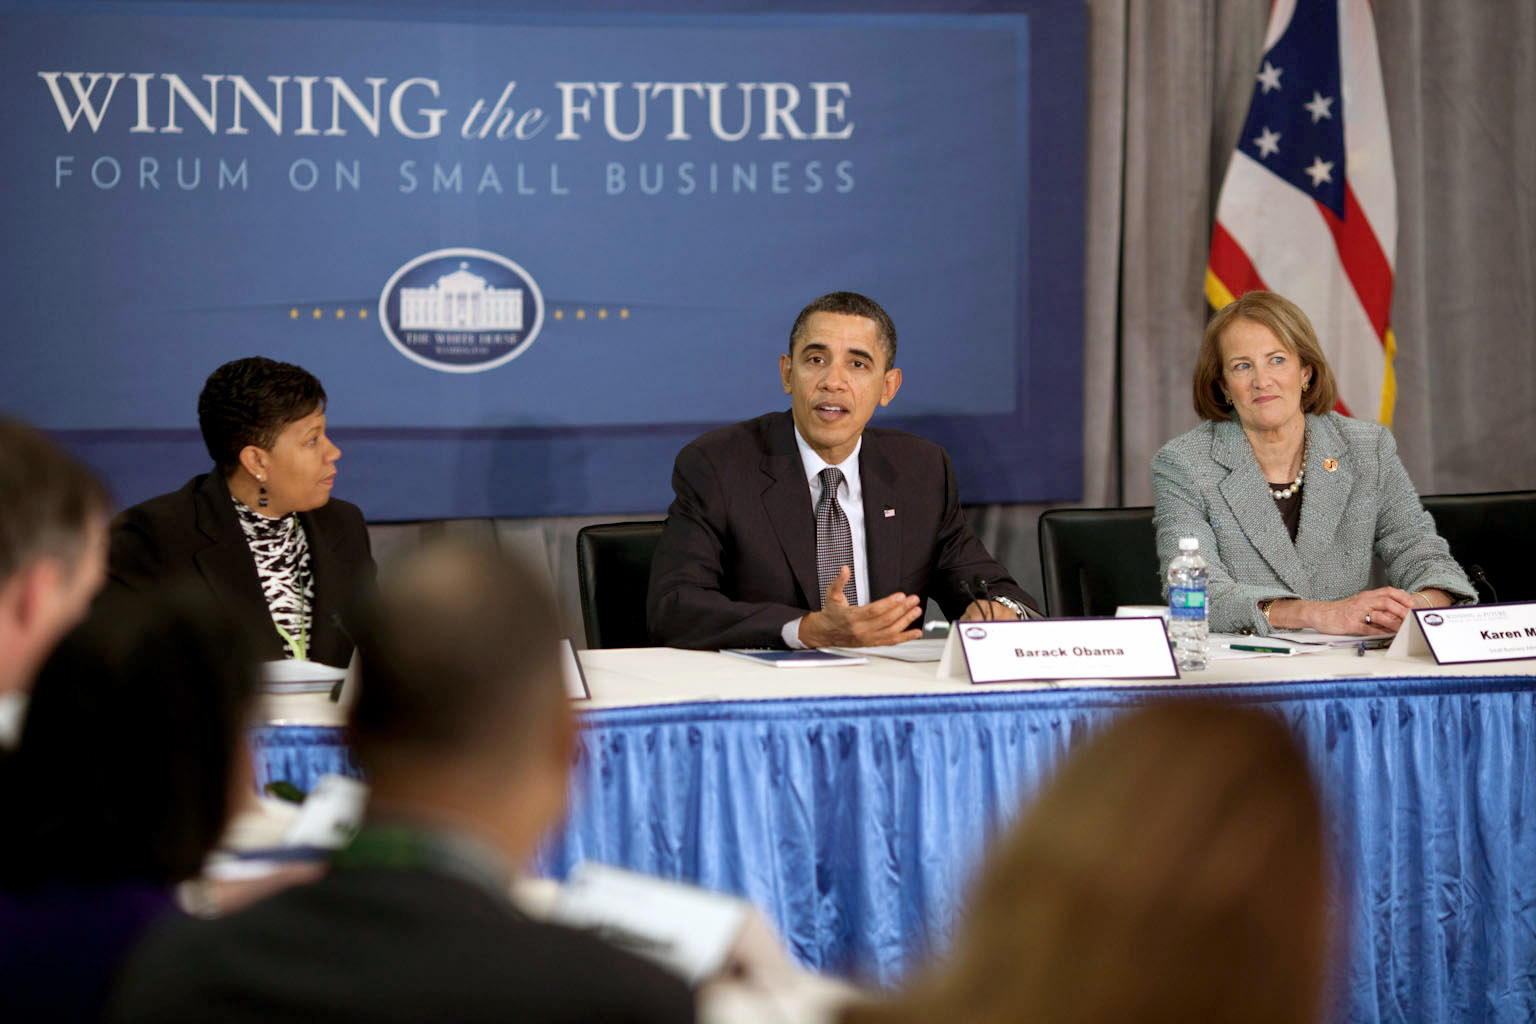 President Barack Obama at the Entrepreneurship Breakout Session at the Winning the Future Forum on Small Business